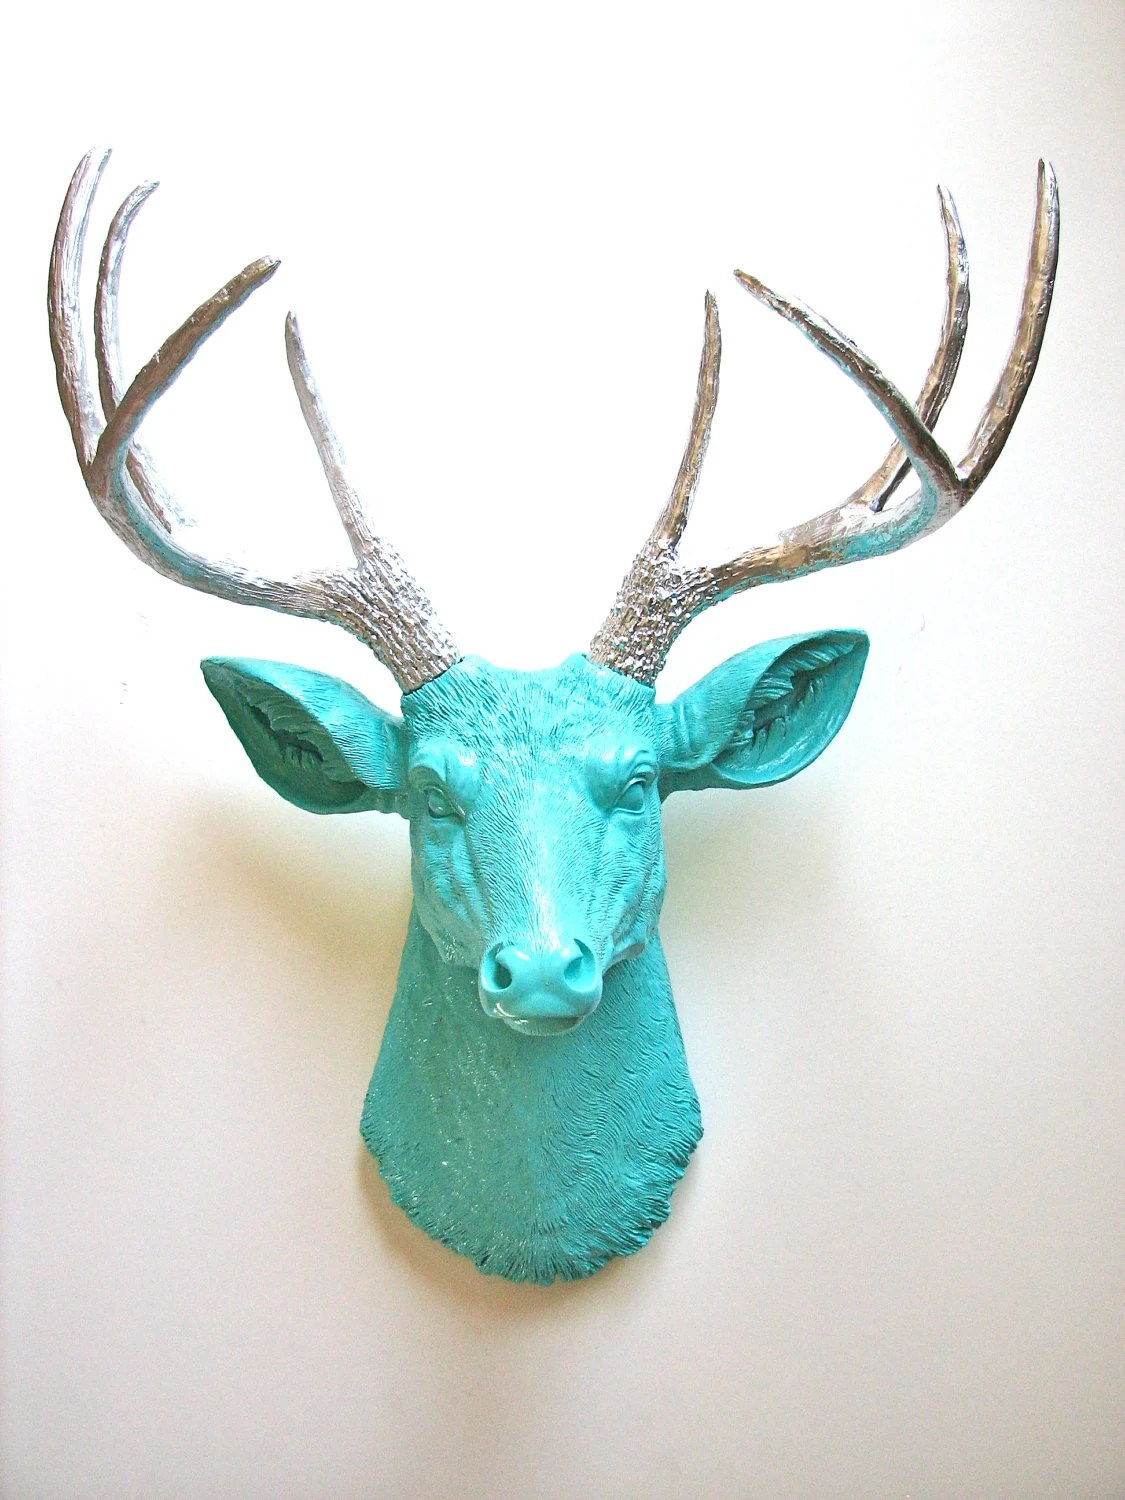 Faux Taxidermy Deer Head wall mount in aqua and silver: Deerman the Deer Head